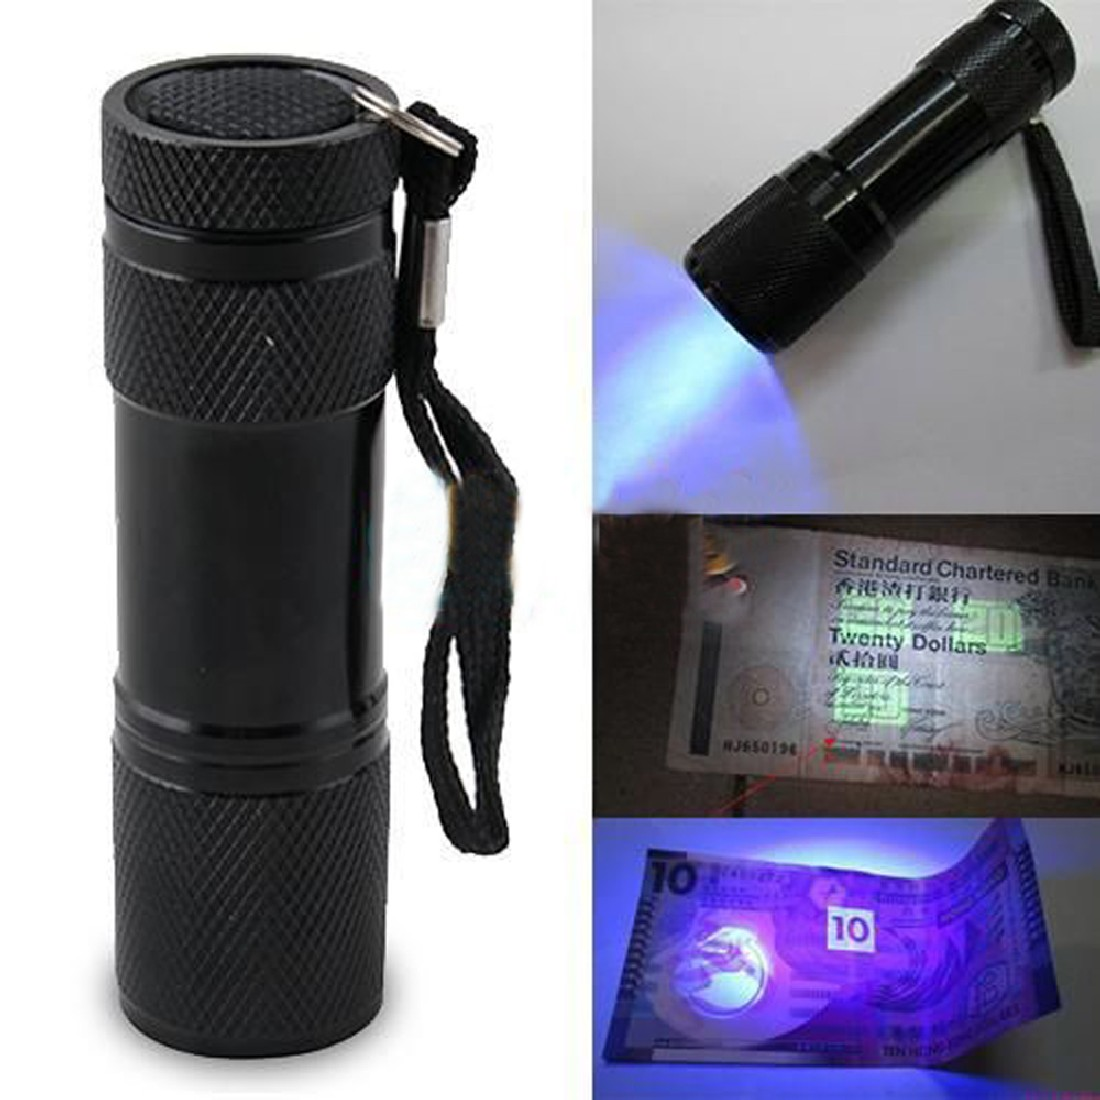 1pc Camping Nitecore Aluminum 9 Led UV Flashlight Violet Light Flashlights Torch Light Lamp Tactical Flashlight Ultraviolet Lamp tactical ultraviolet flashlight detector 365 nm led uv lanternas sk98 purple light cree xml q5 violet torch lamp by aa 14500